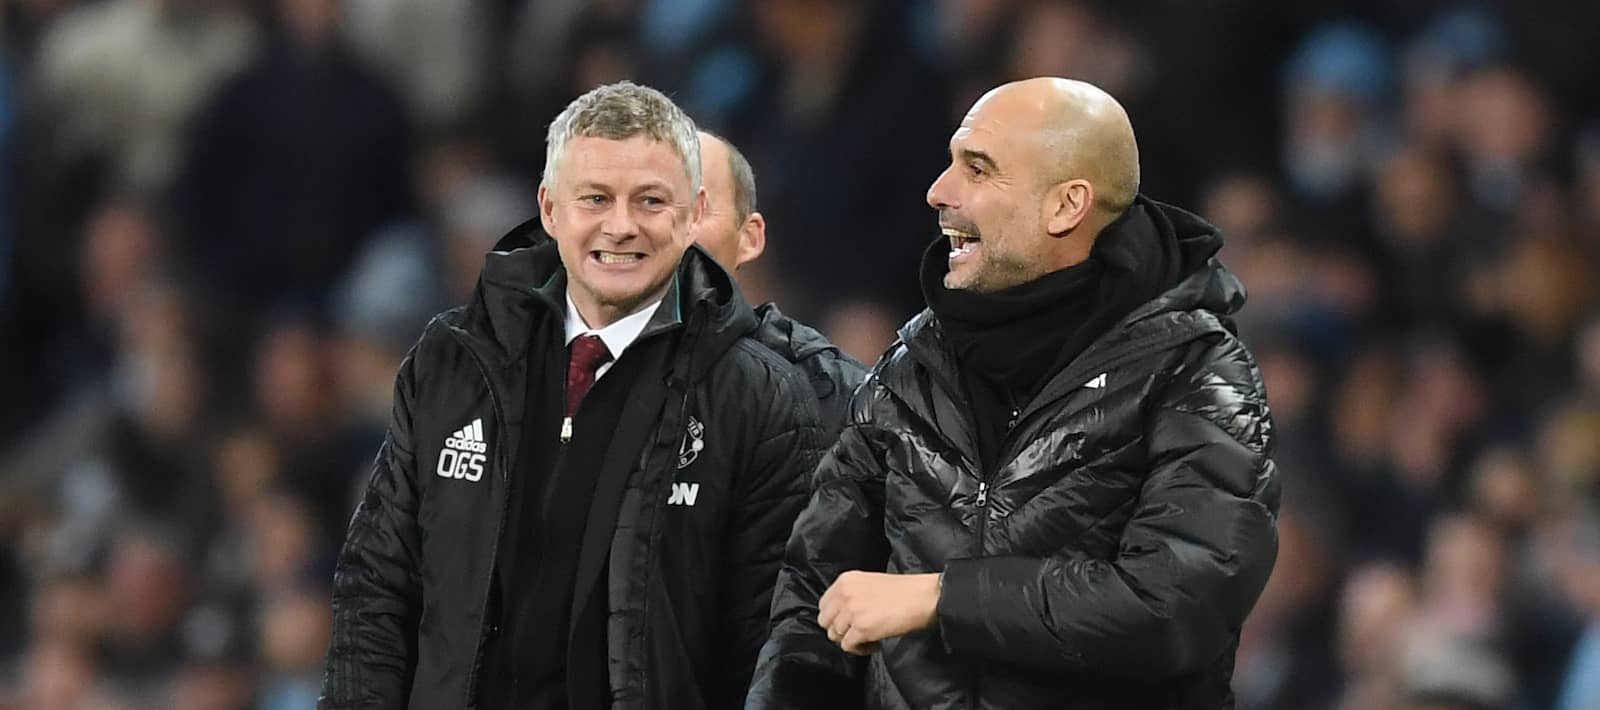 Man City's UEFA ban: What does it mean for Man United?